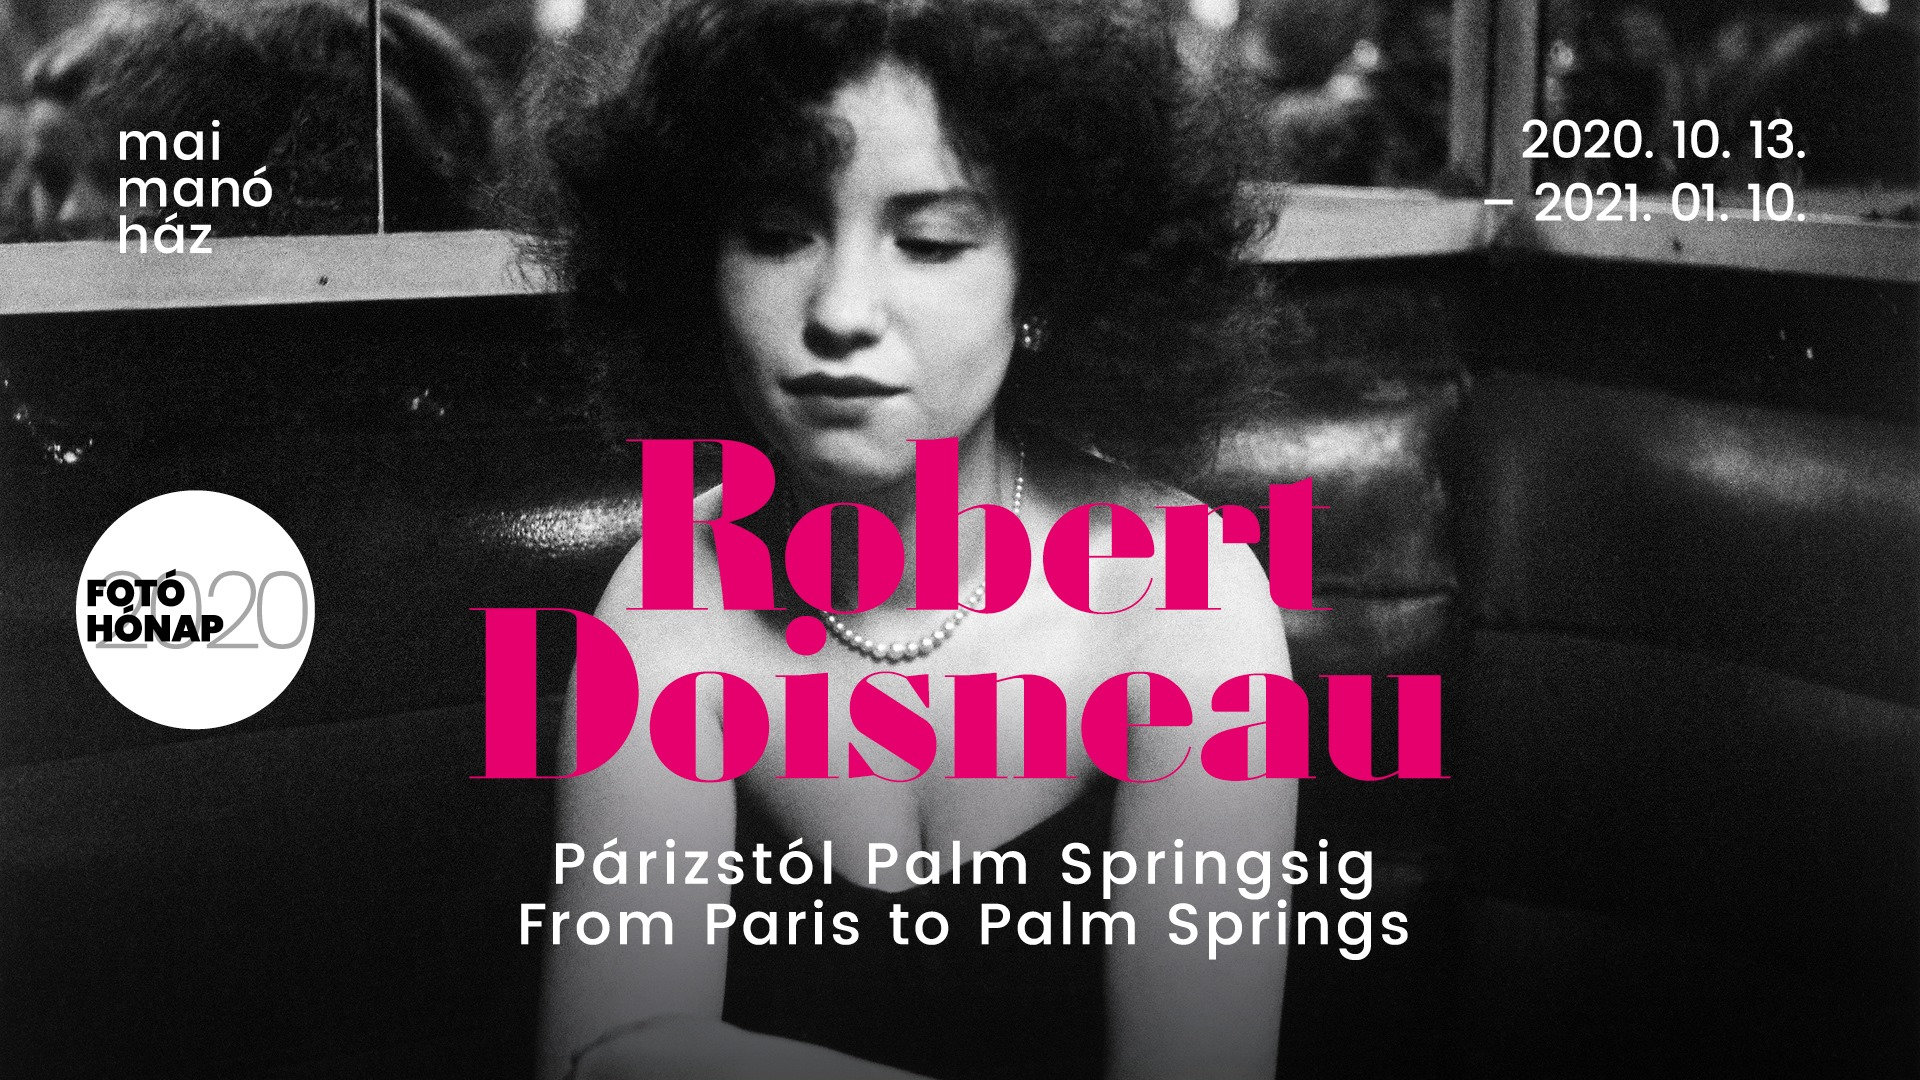 Robert Doisneau: 'From Paris To Palm Springs' Photo Exhibition